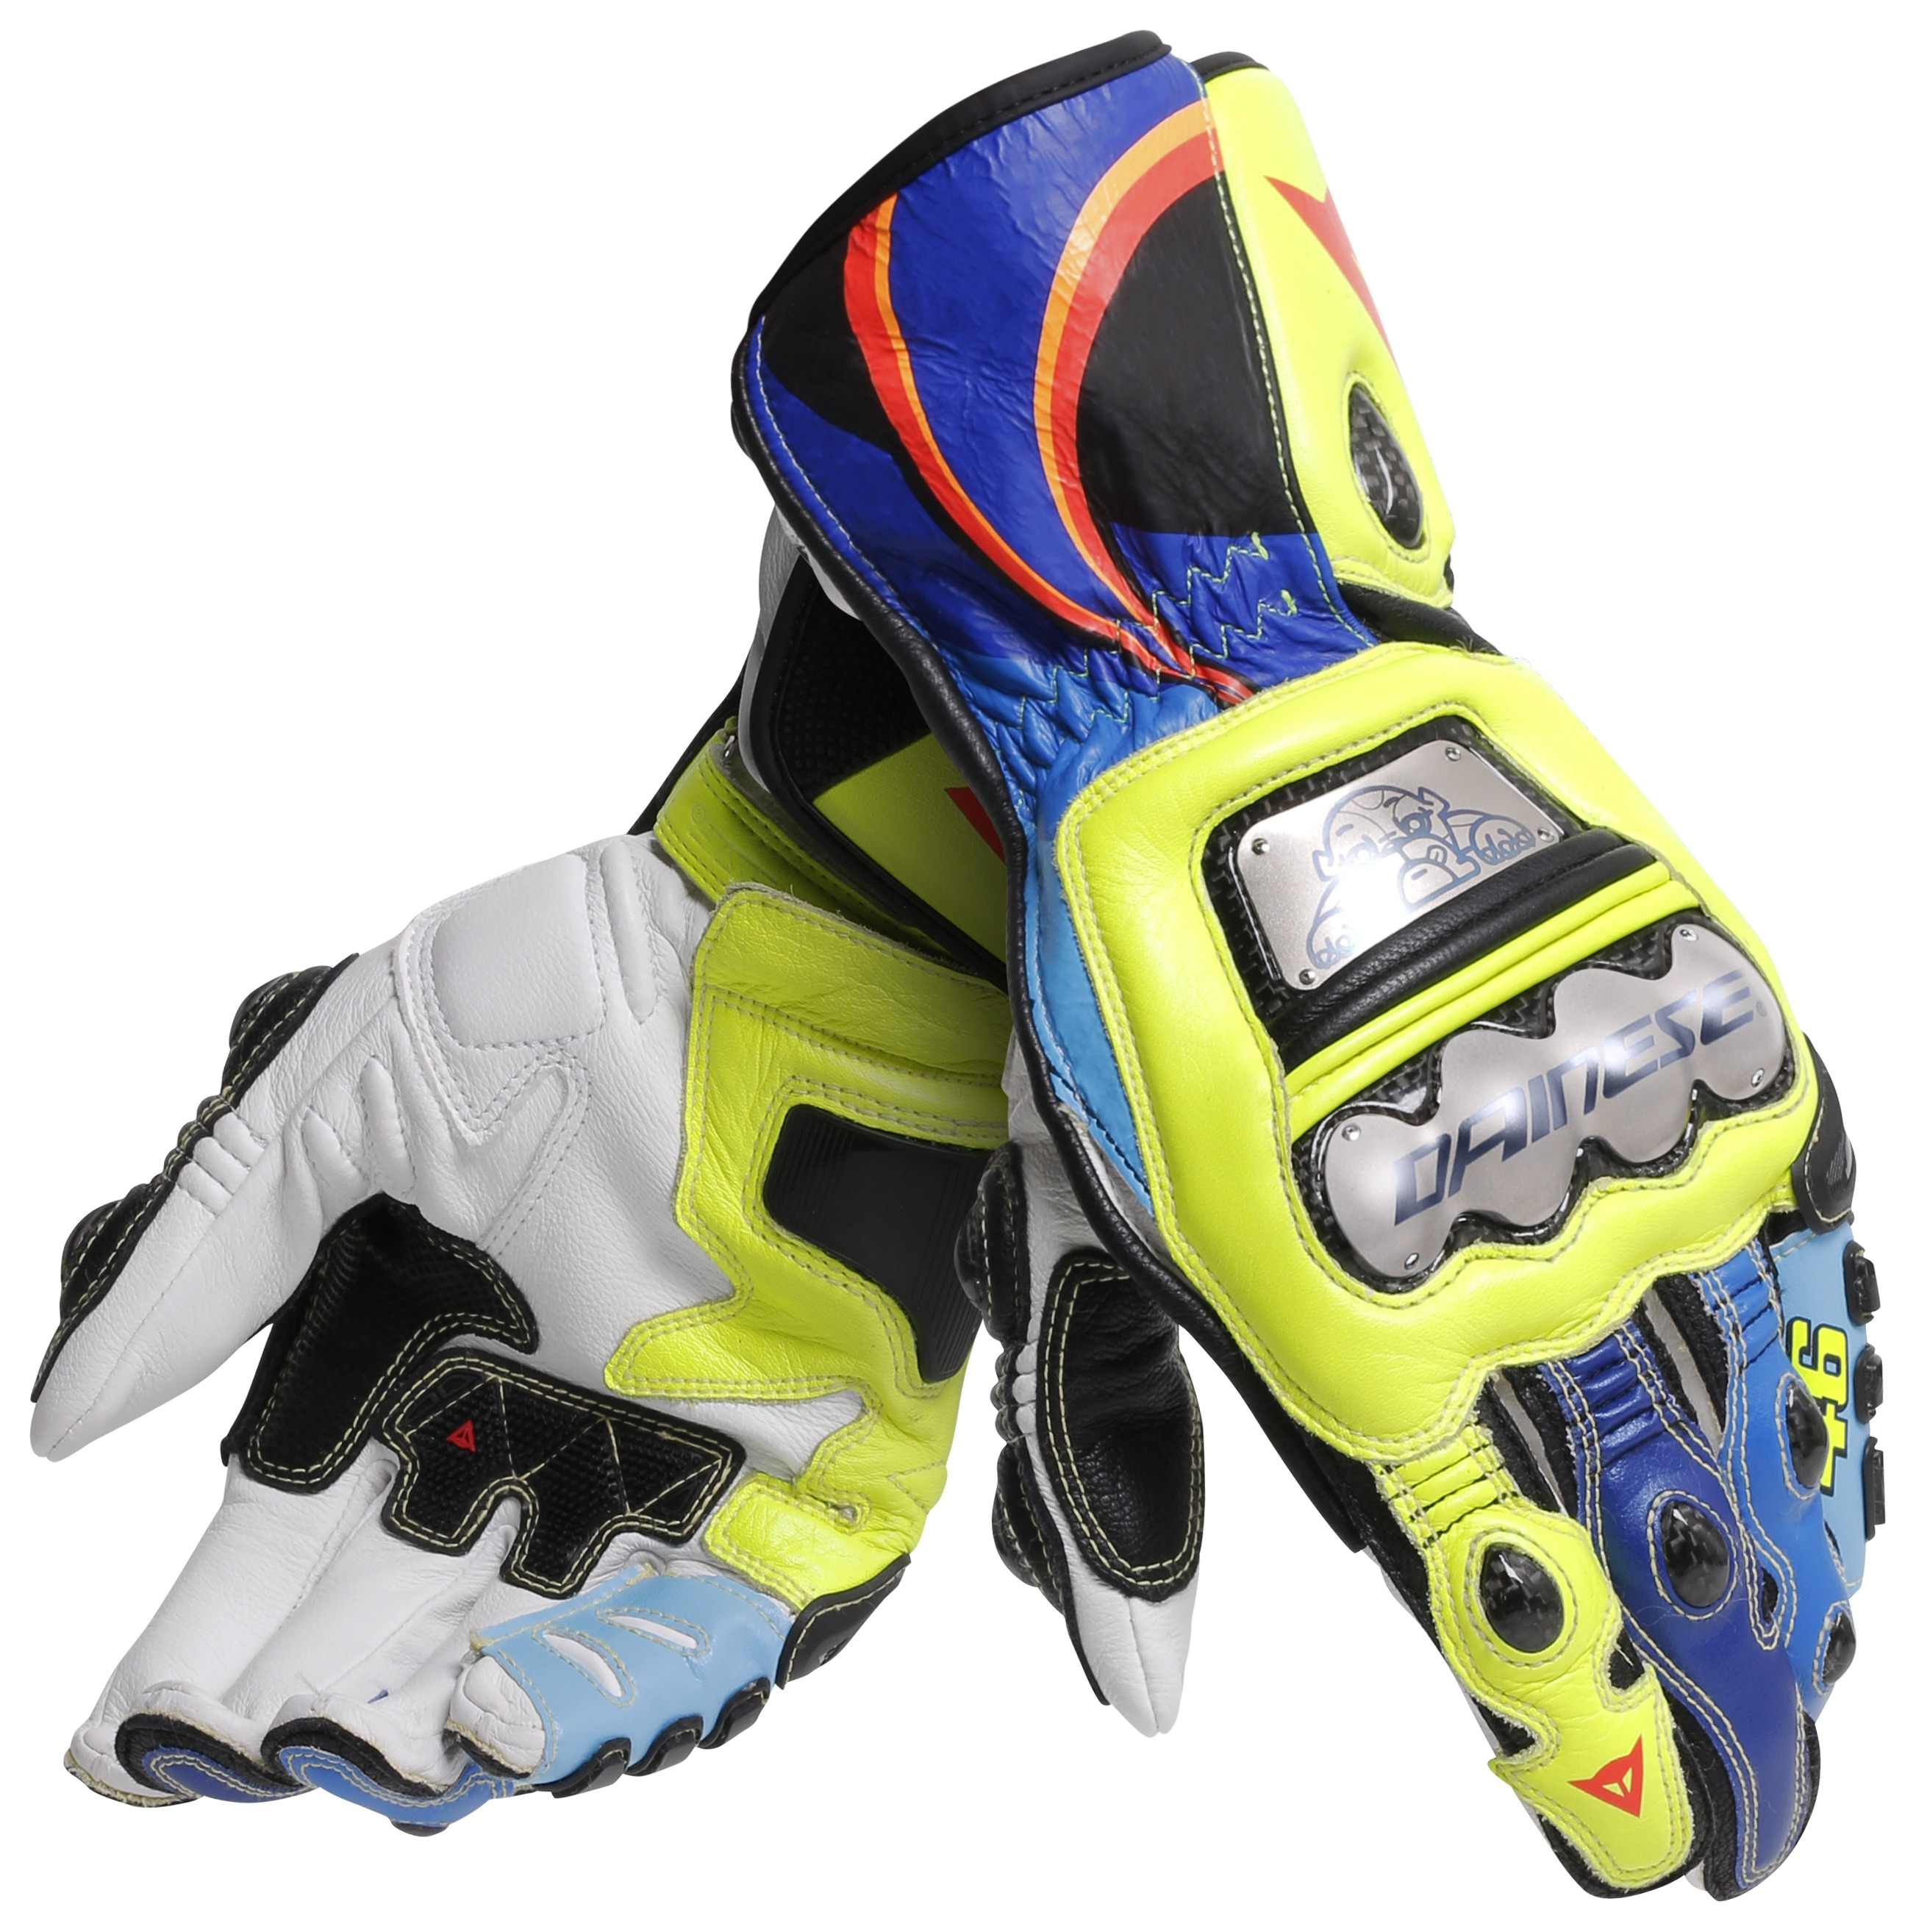 Dainese Full Metal 6 VR46 Replica Gloves - Cycle Gear